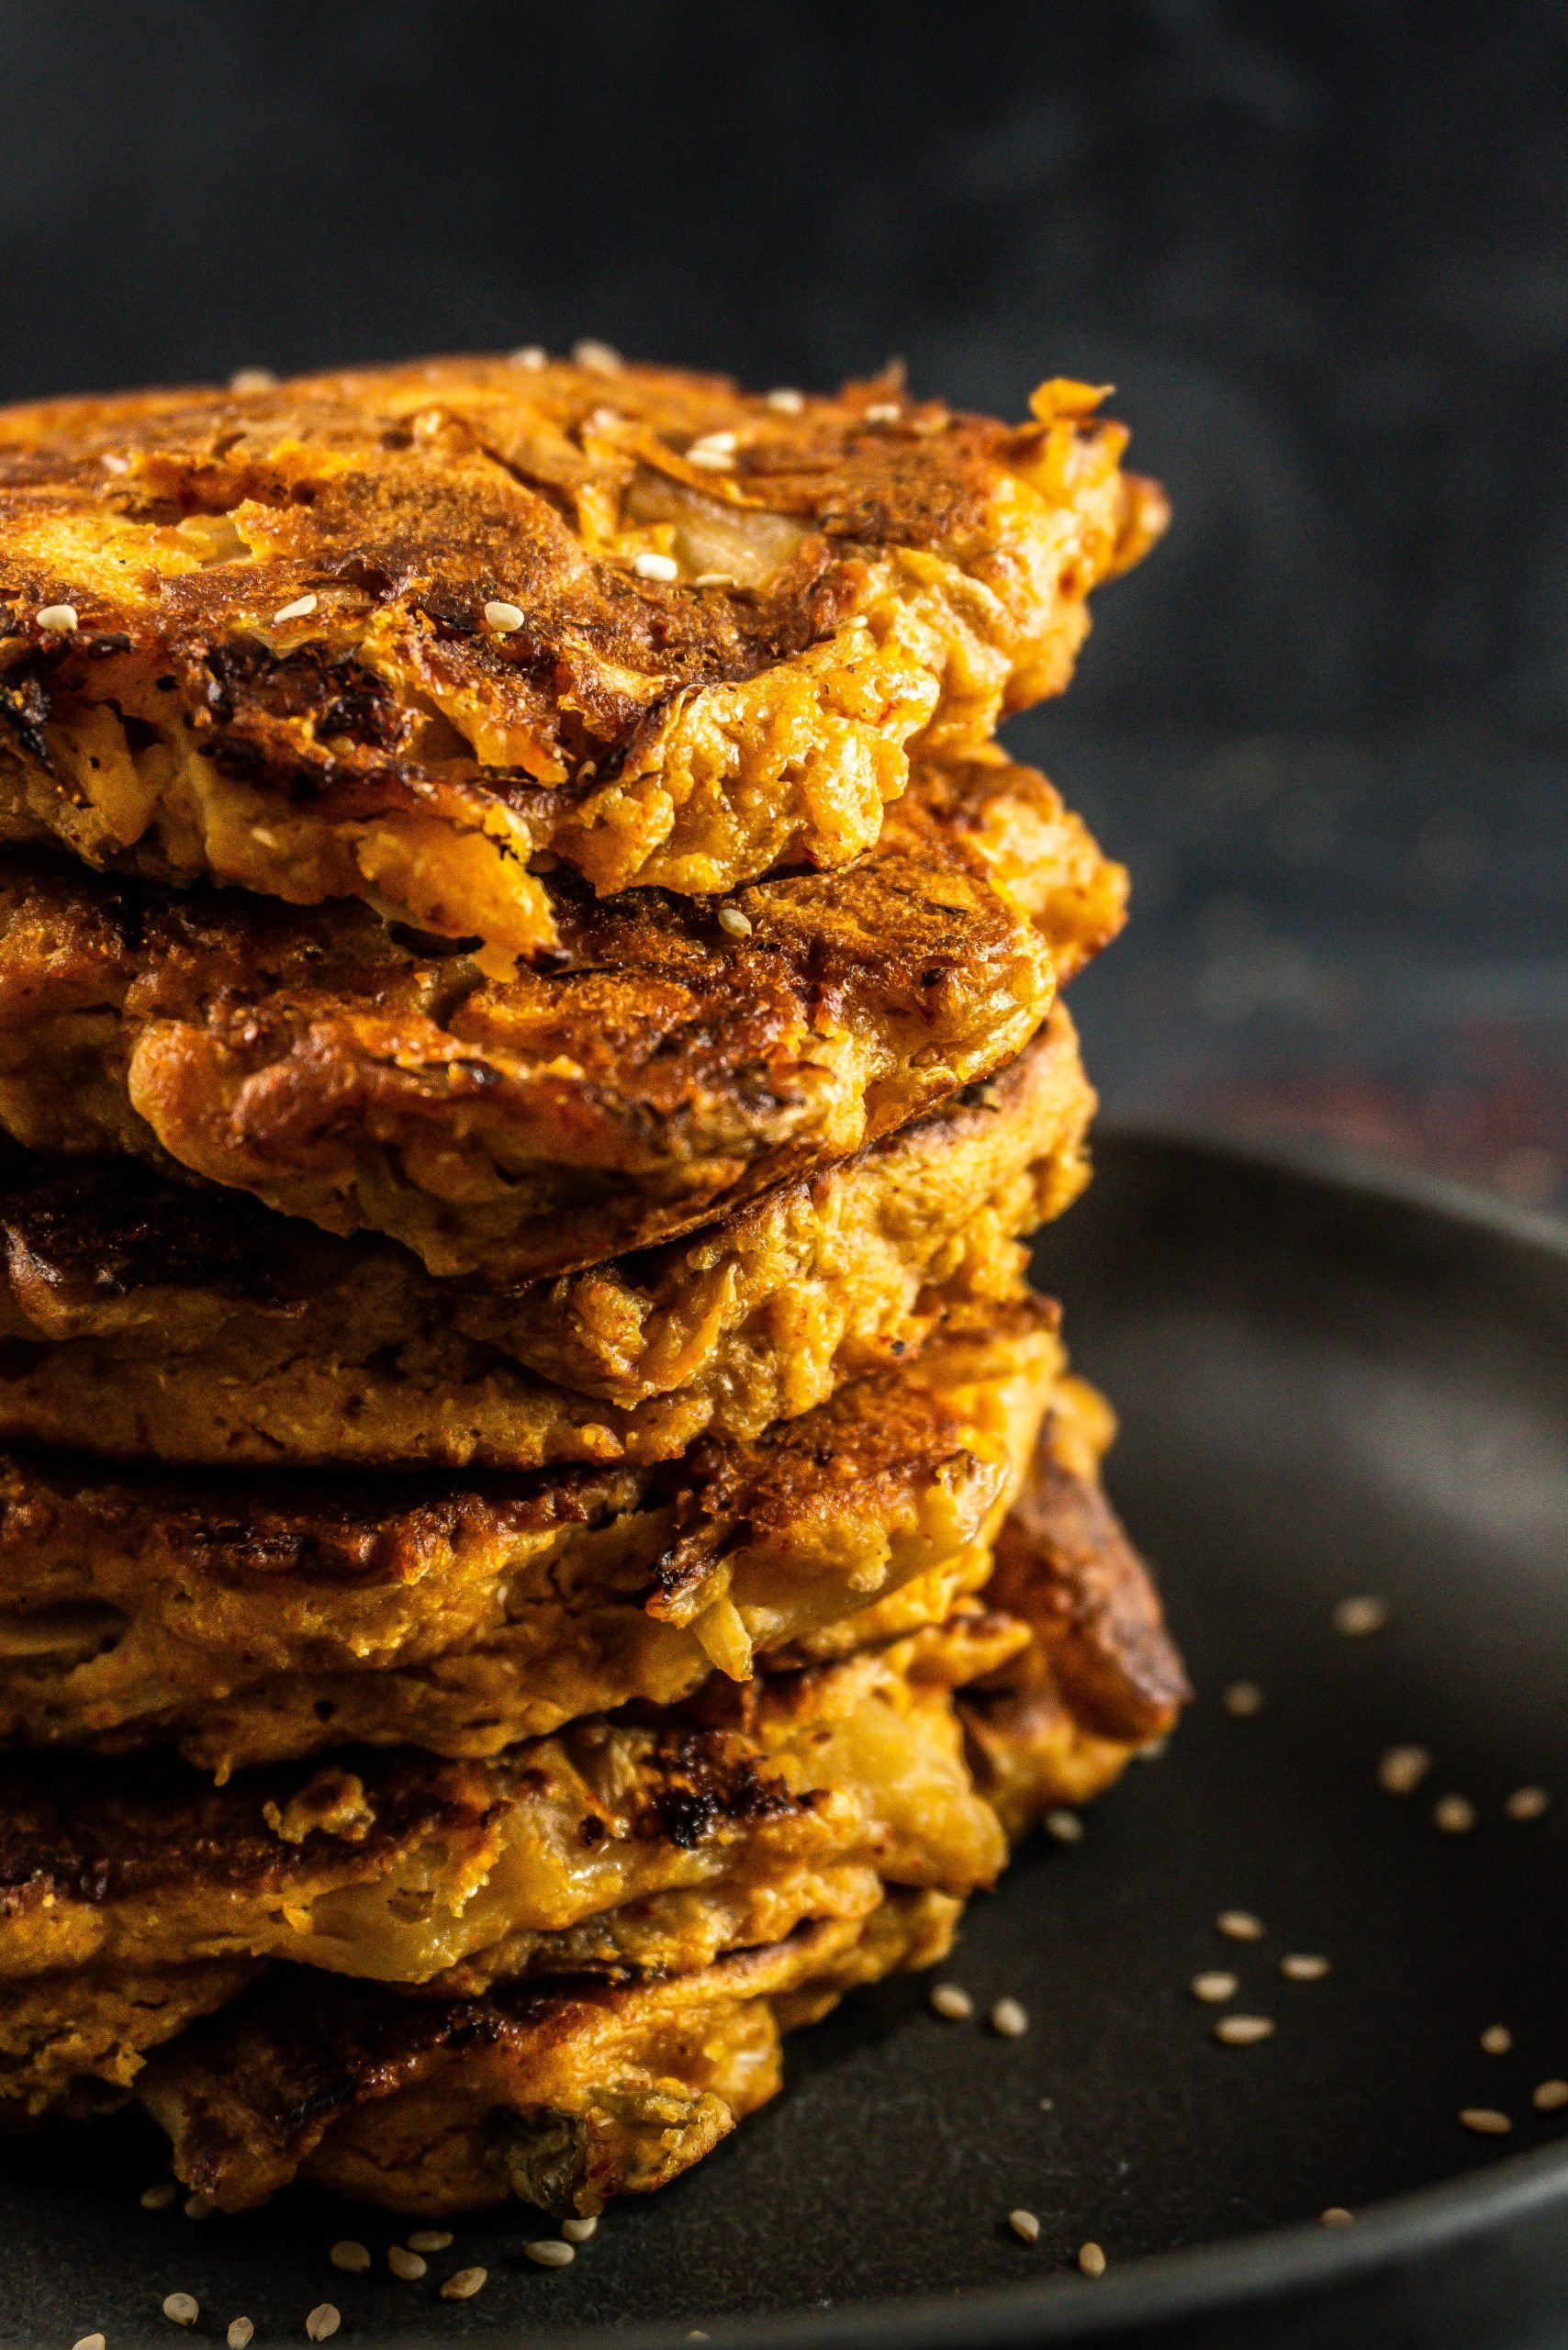 Korean-style Kimchi Pancakes (Kimchi Jeon) photographed as a close-up from the side